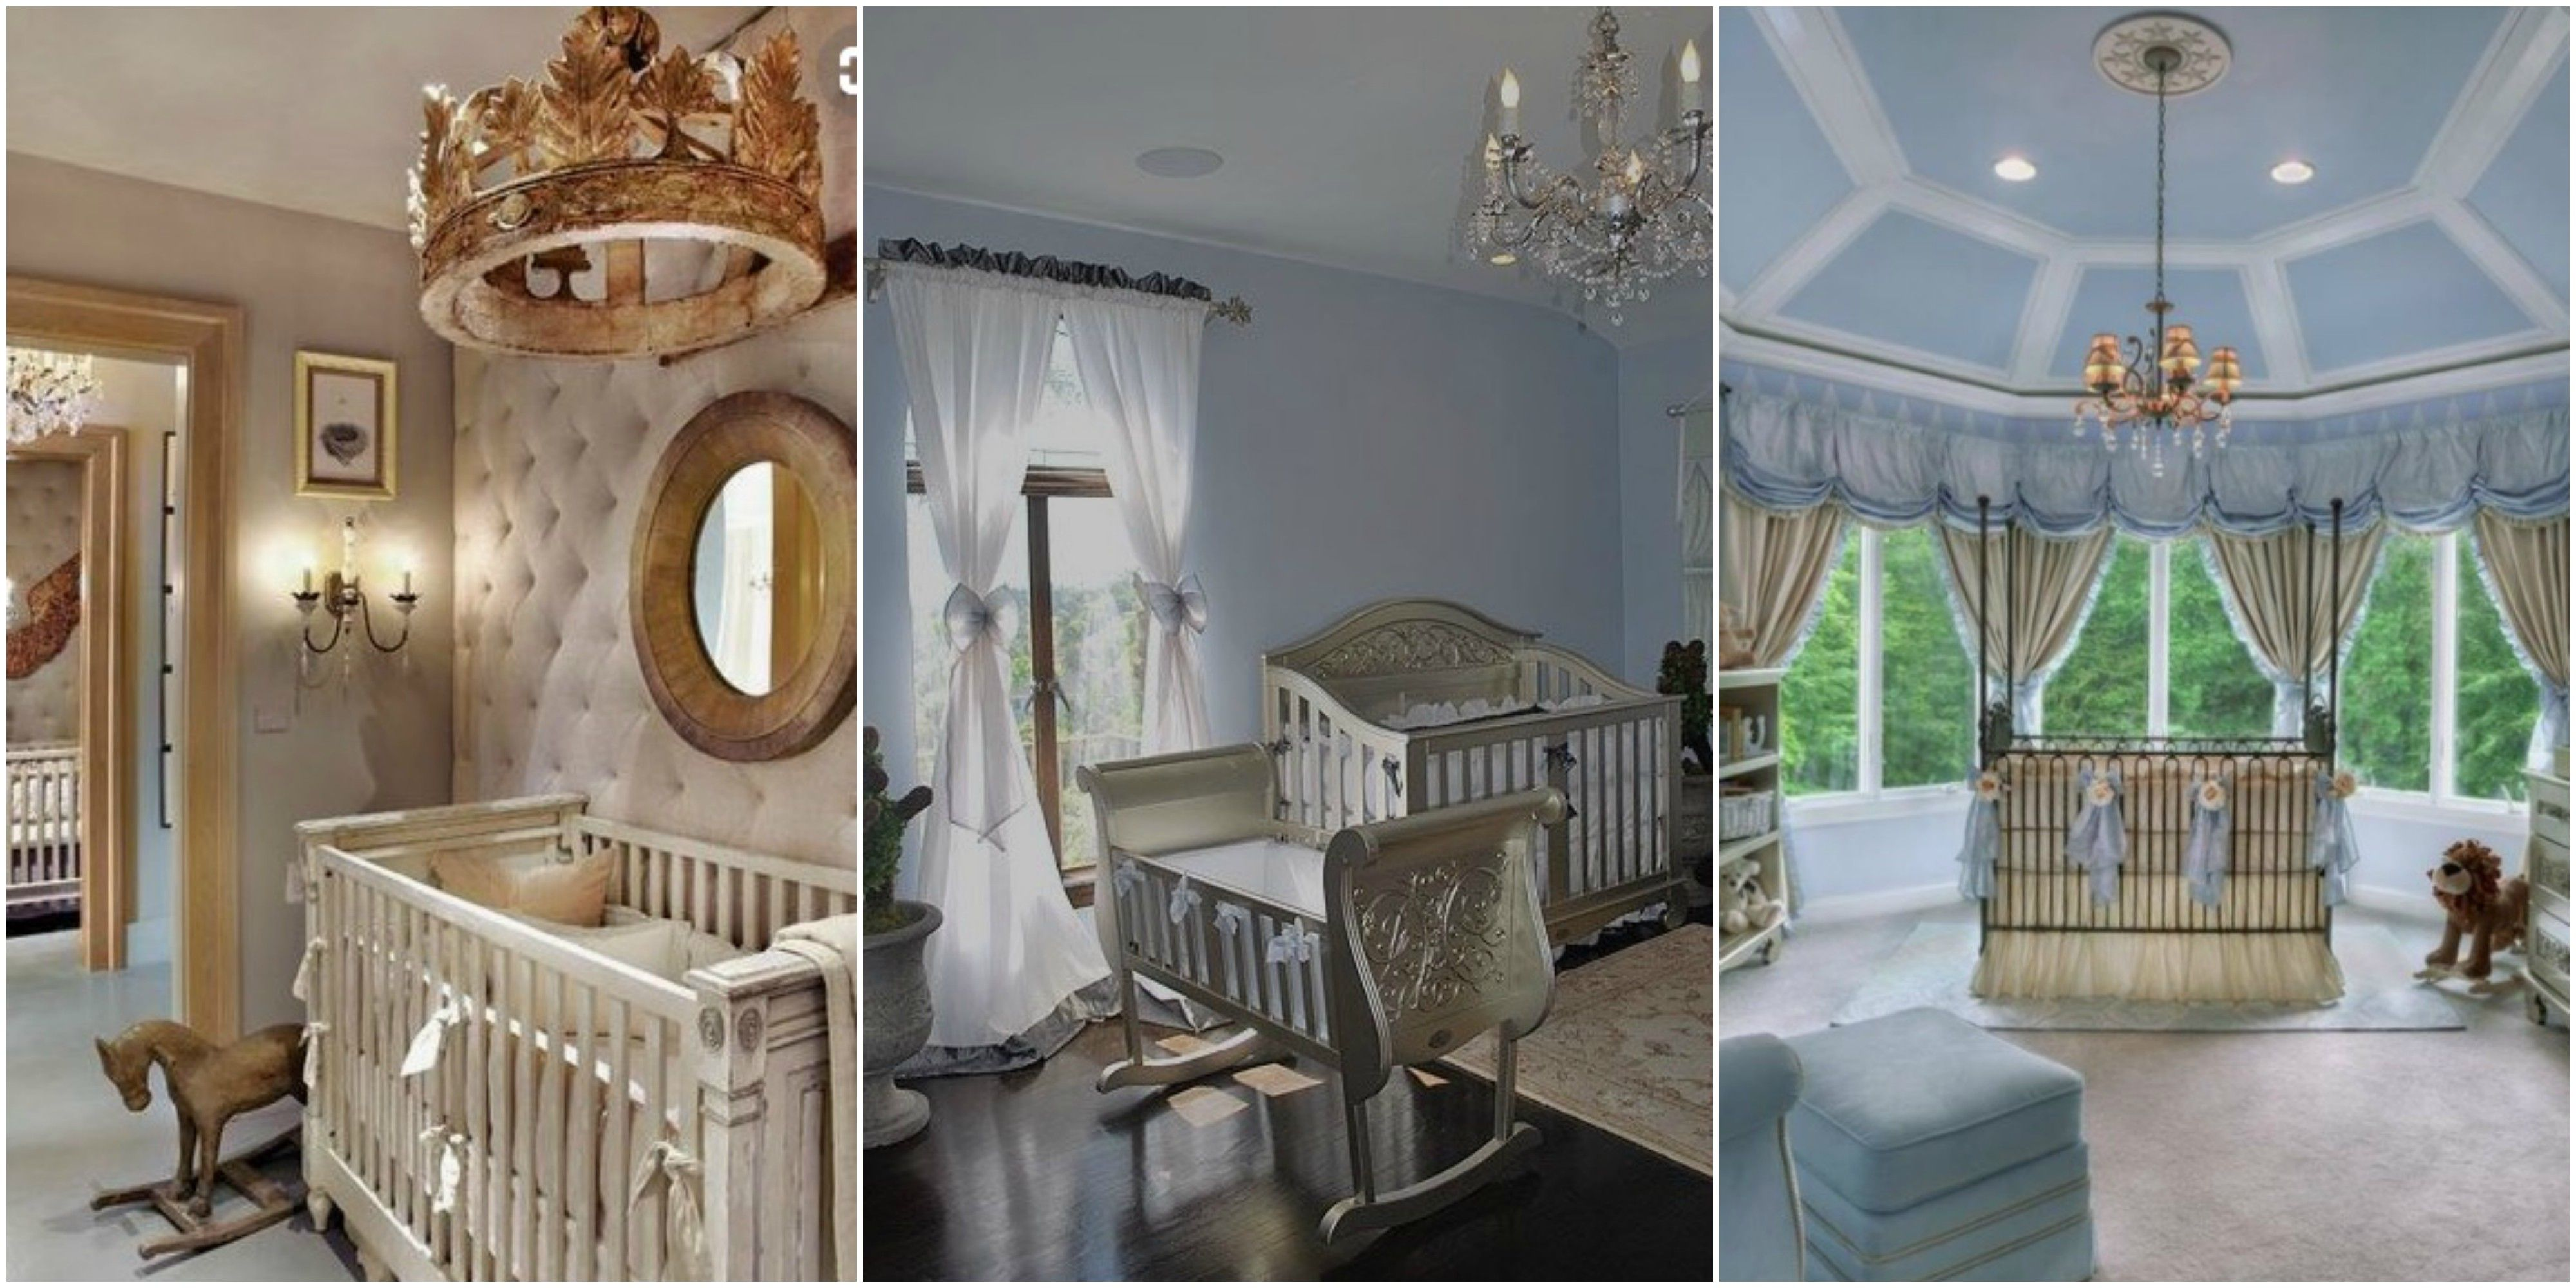 A Nursery For A Royal Baby